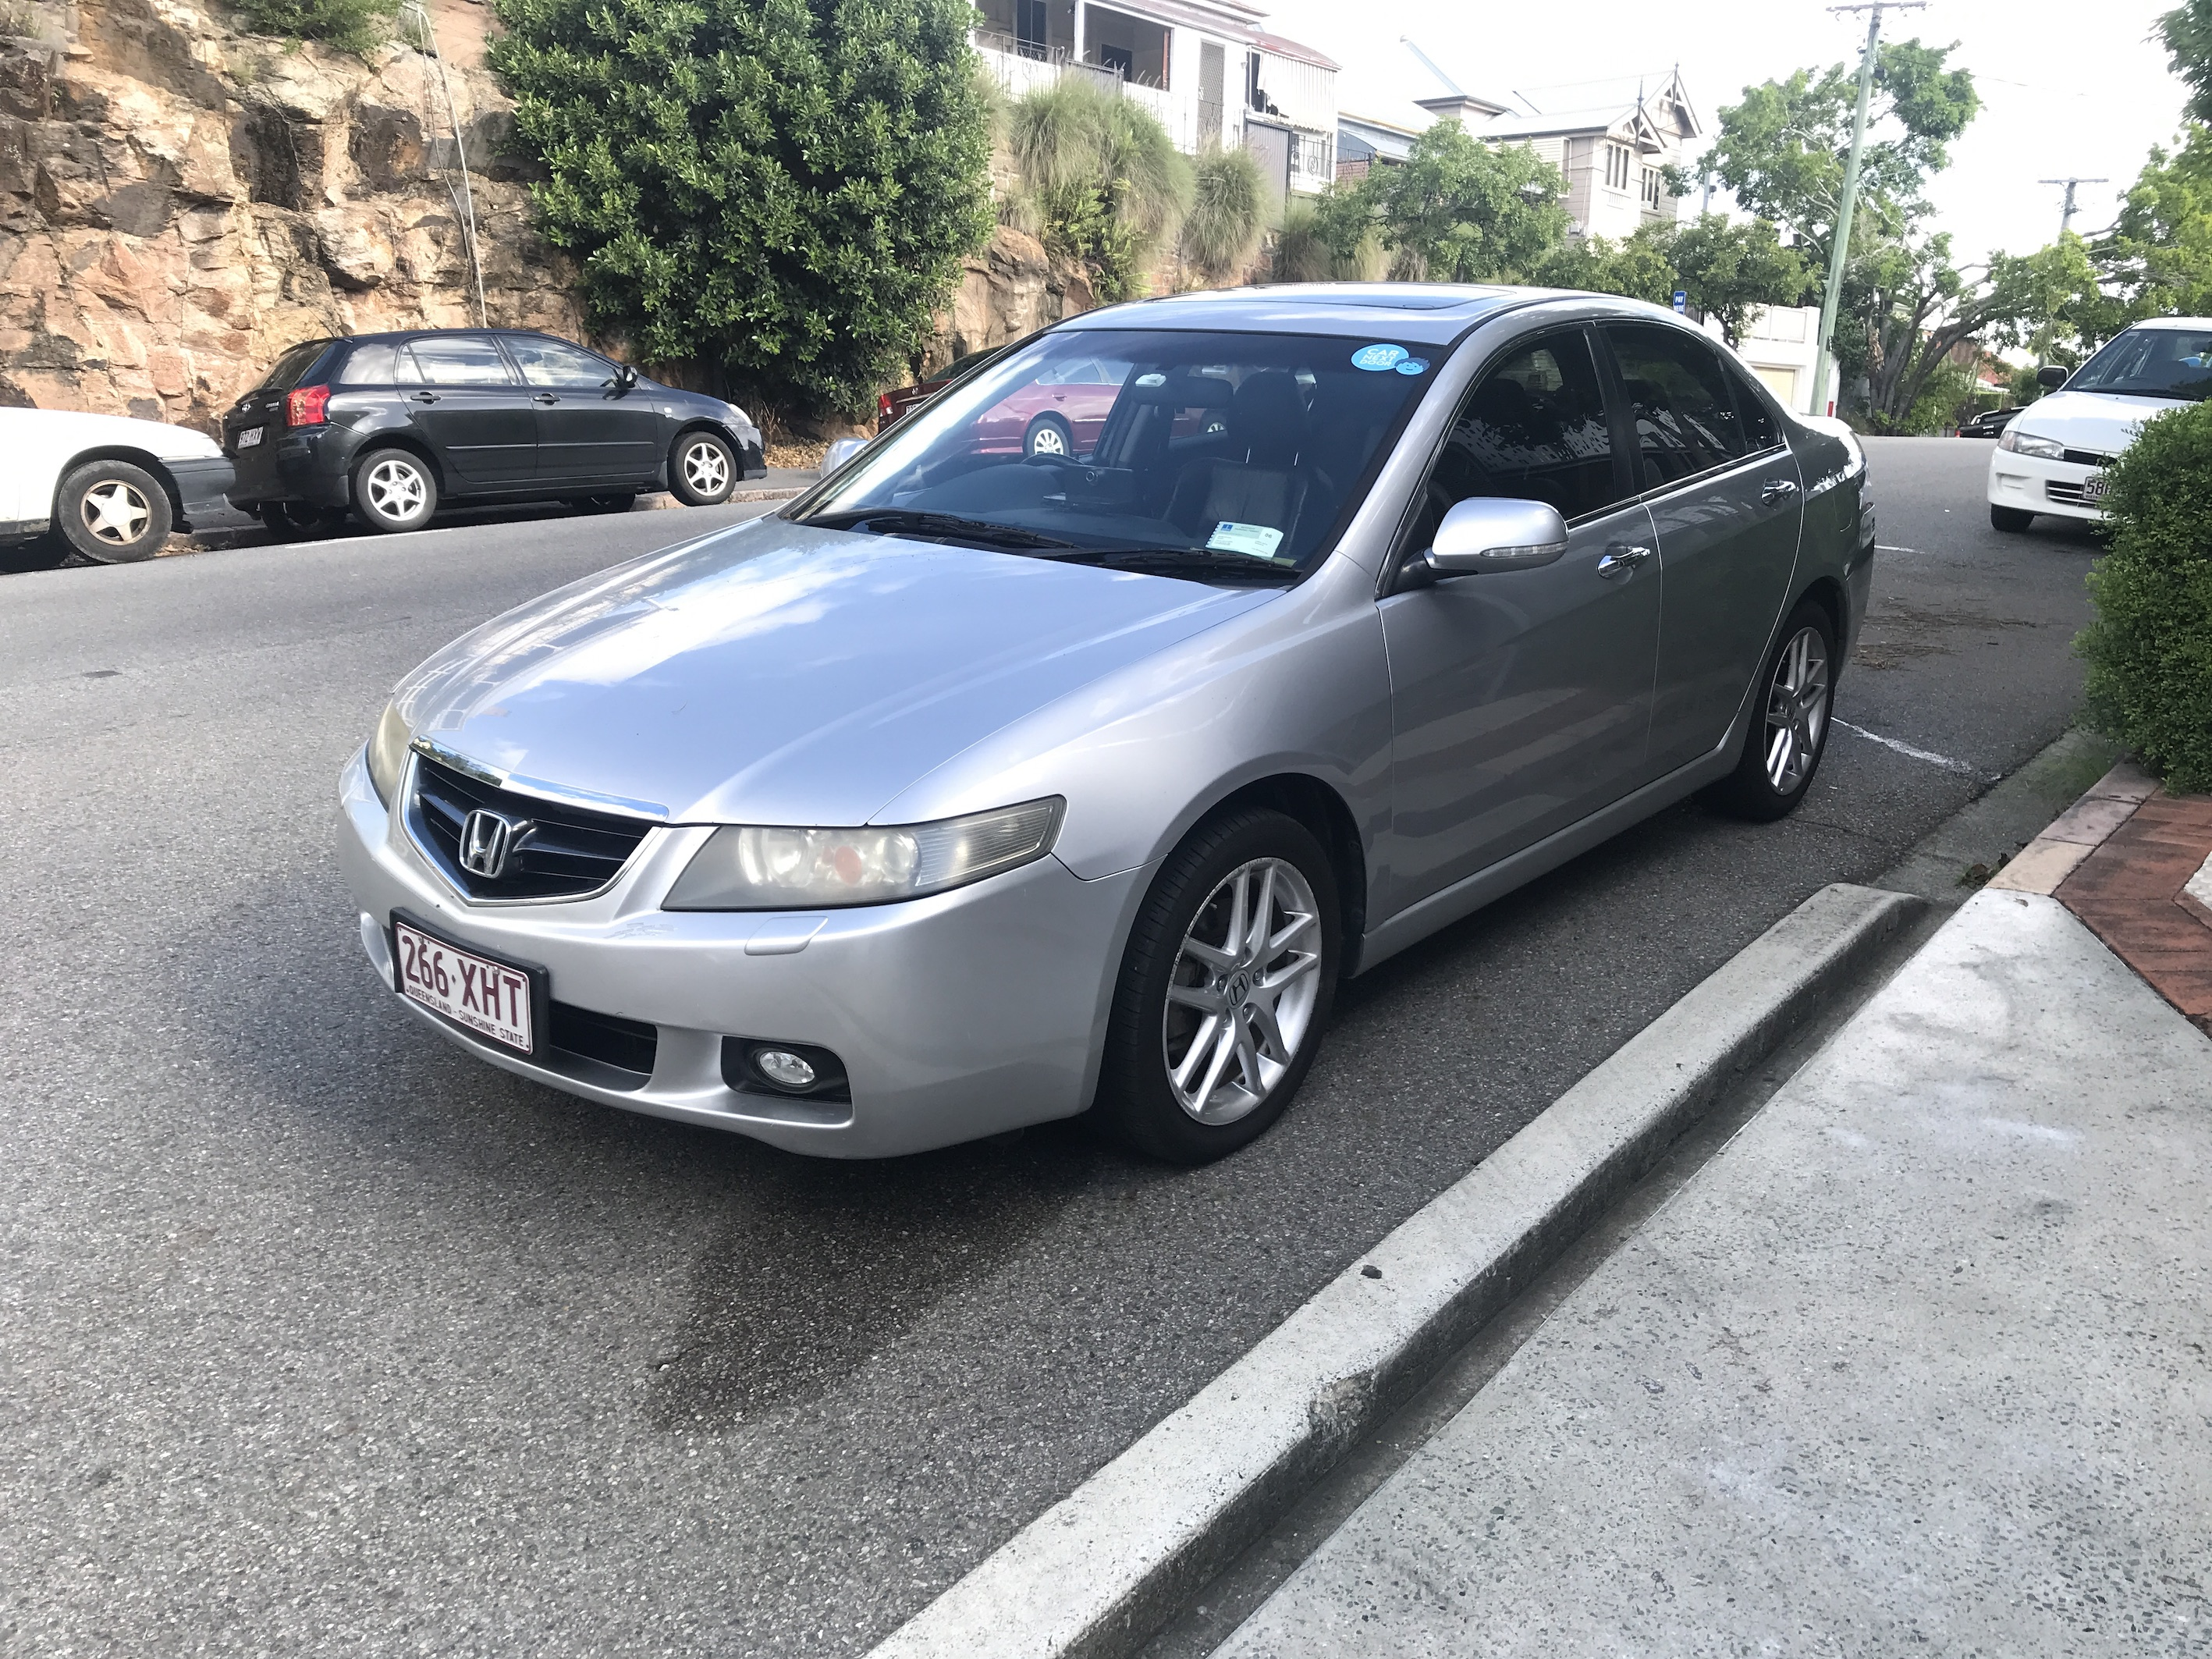 Picture of Ian's 2005 Honda Accord Euro